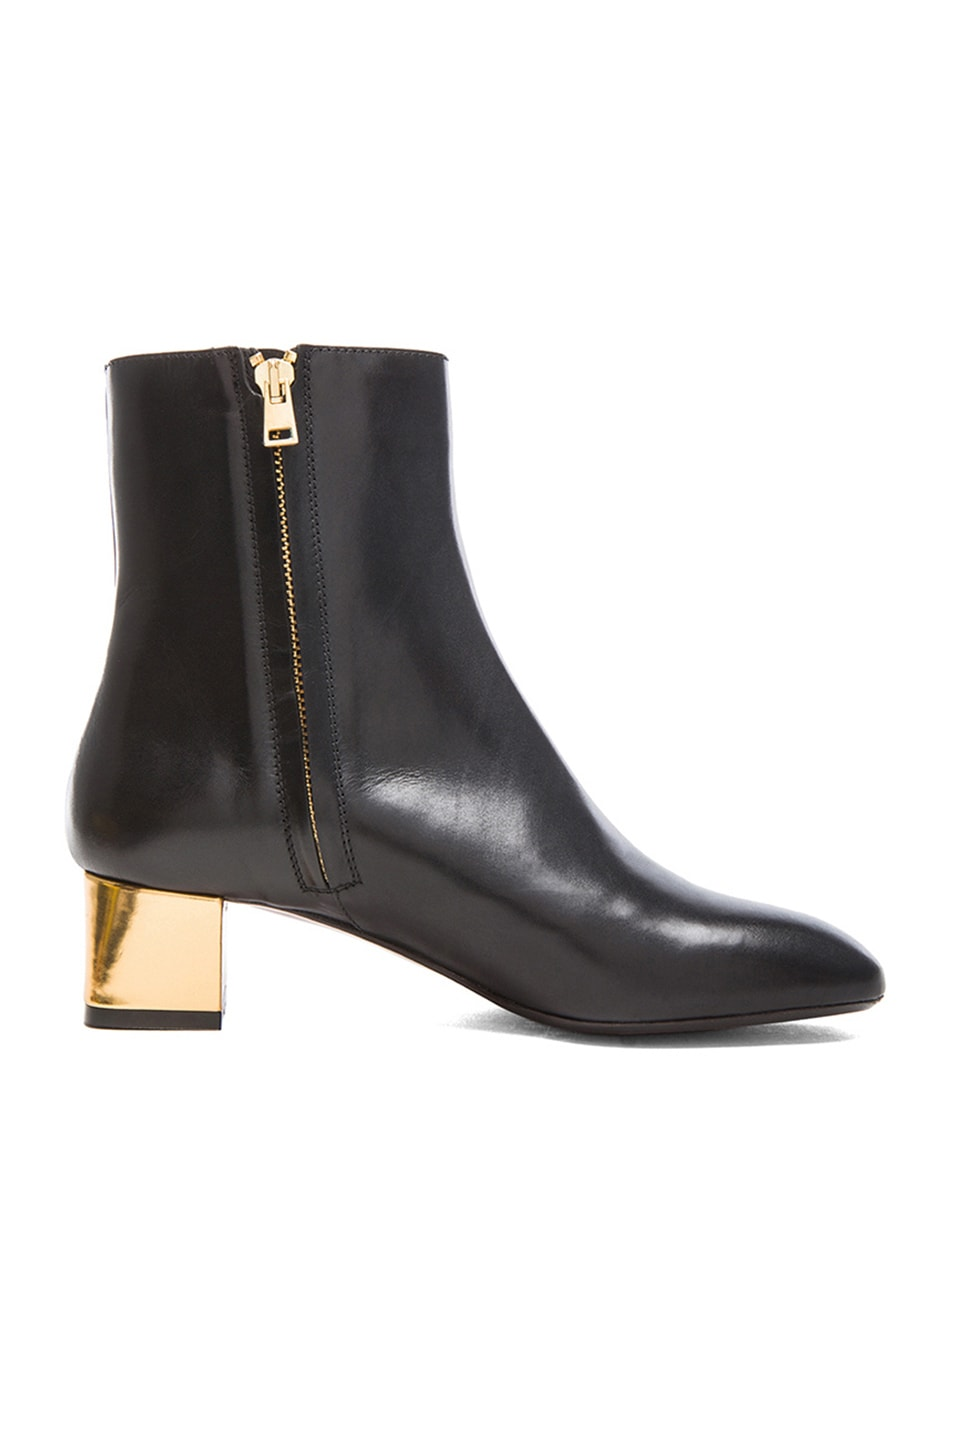 Image 5 of Marni Calfskin Leather Ankle Booties in Coal